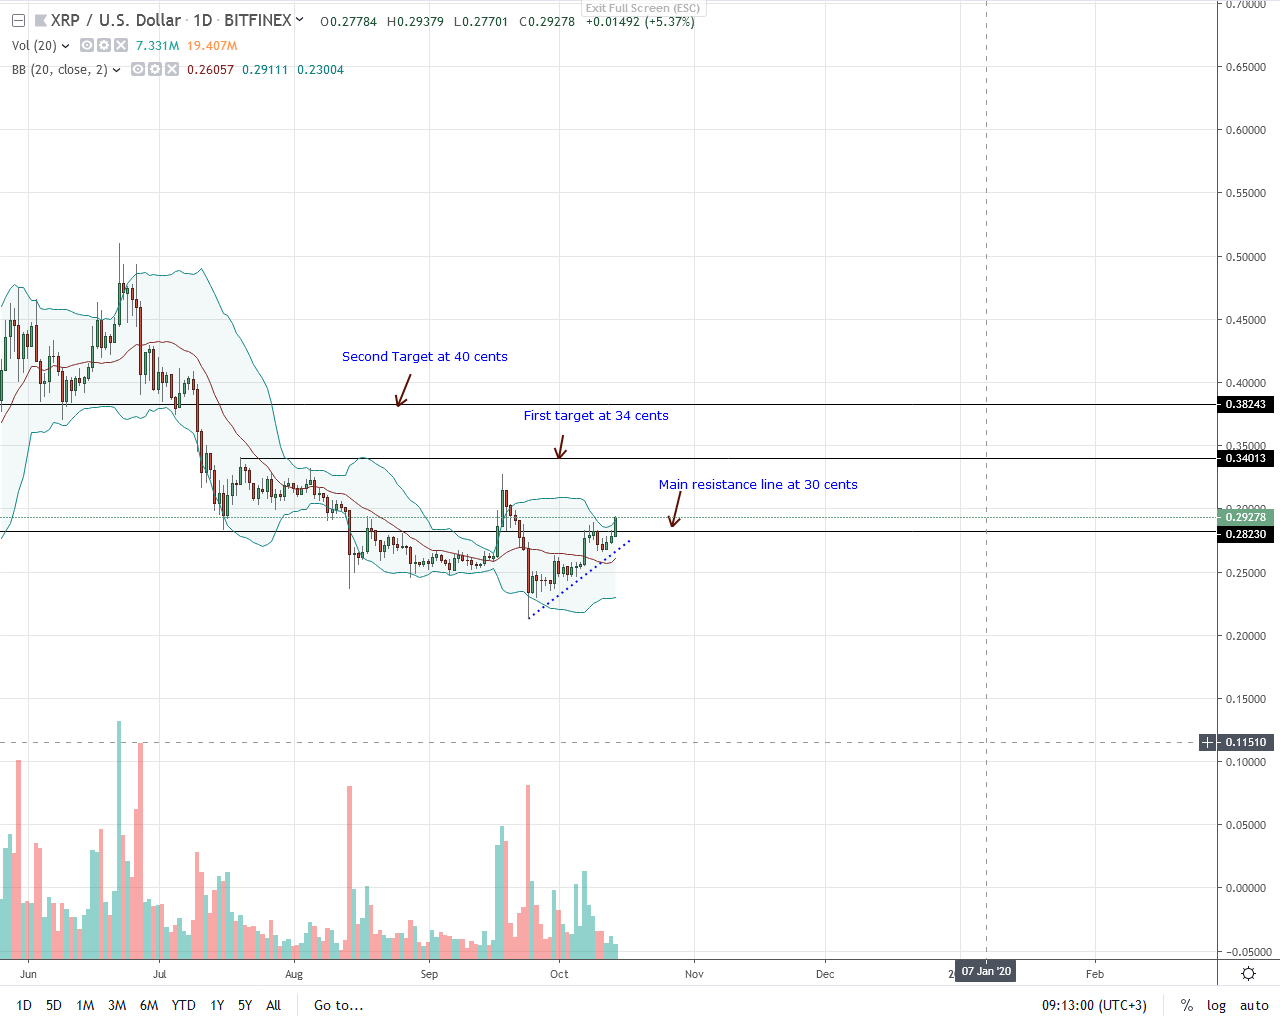 Ripple Daily Chart for Oct 14